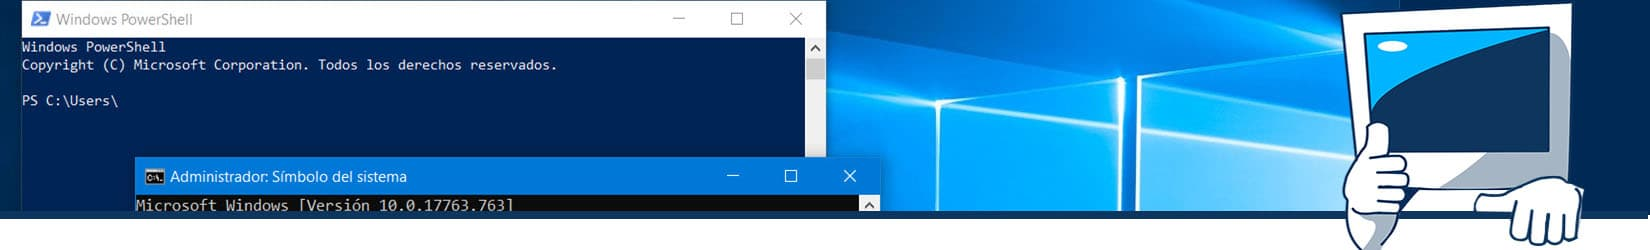 auto apagado windows 10